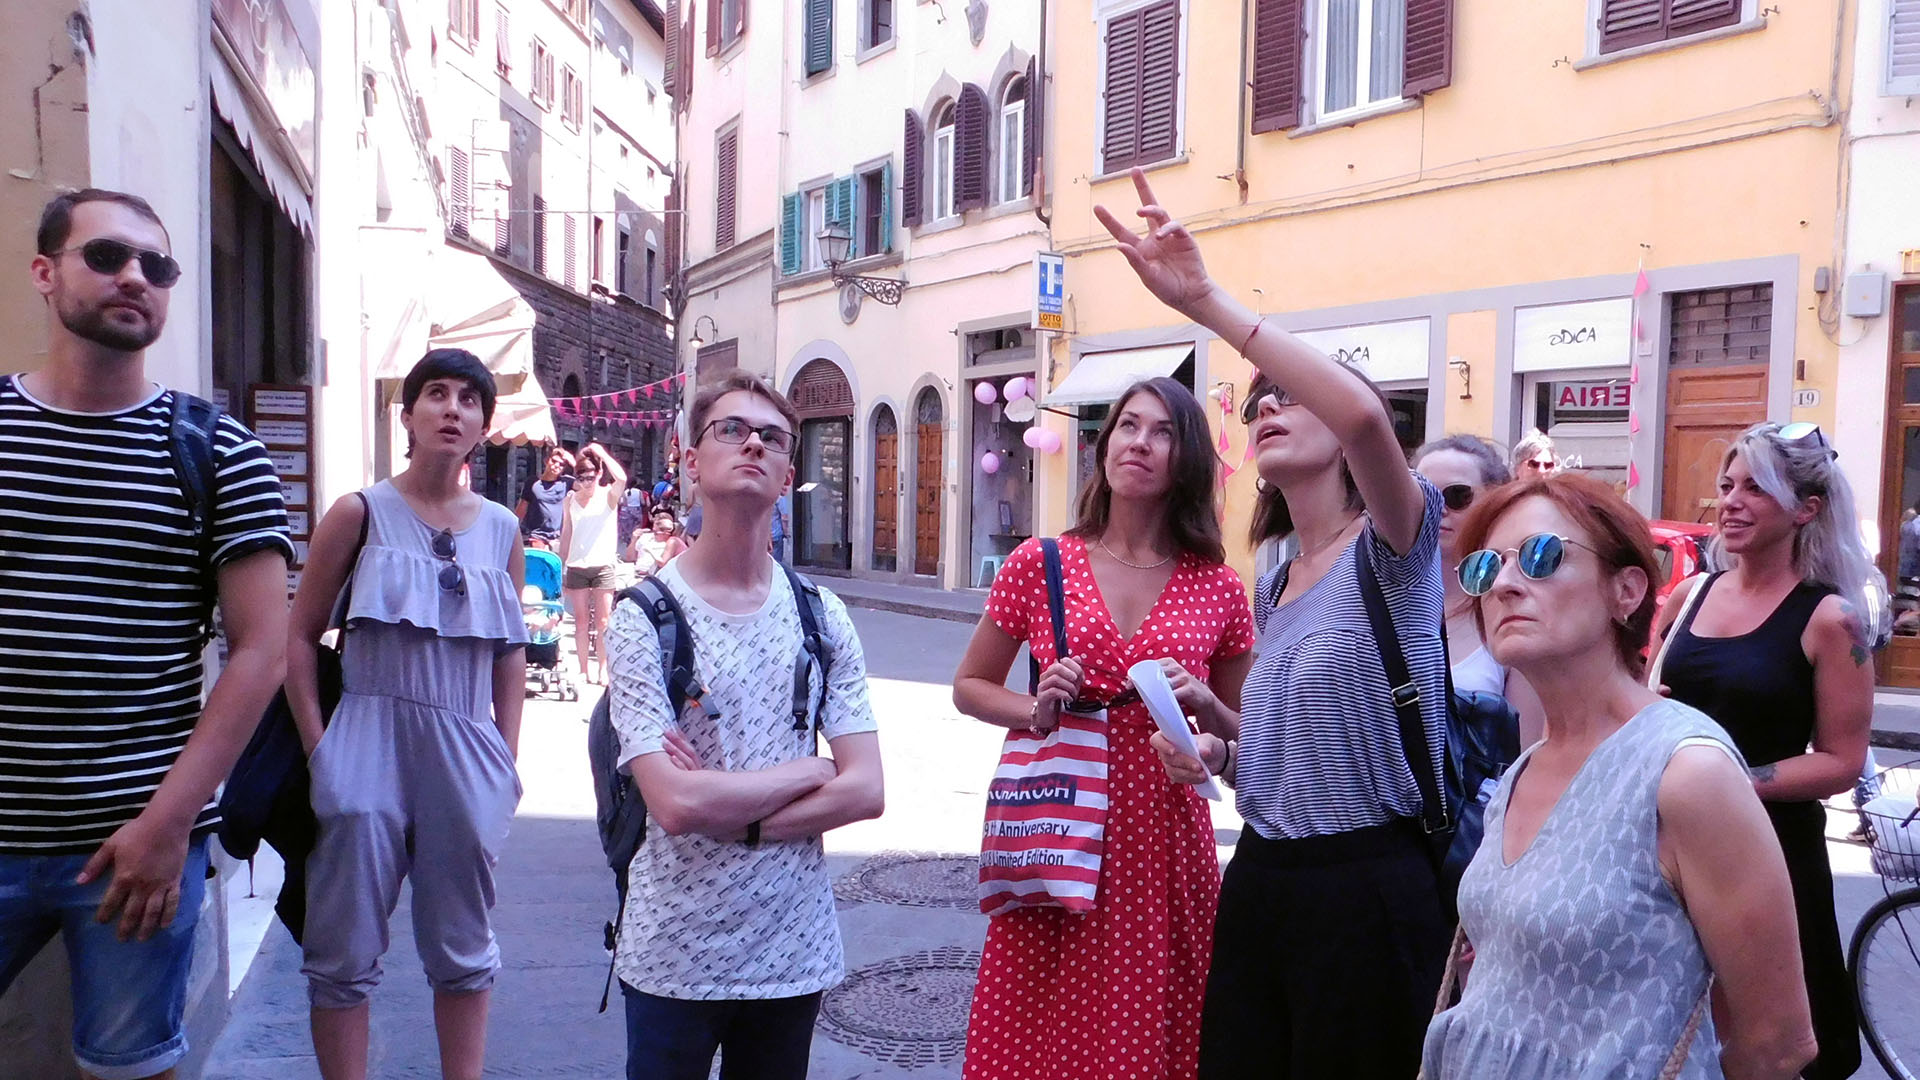 Free time activity in Florence with Parola school students